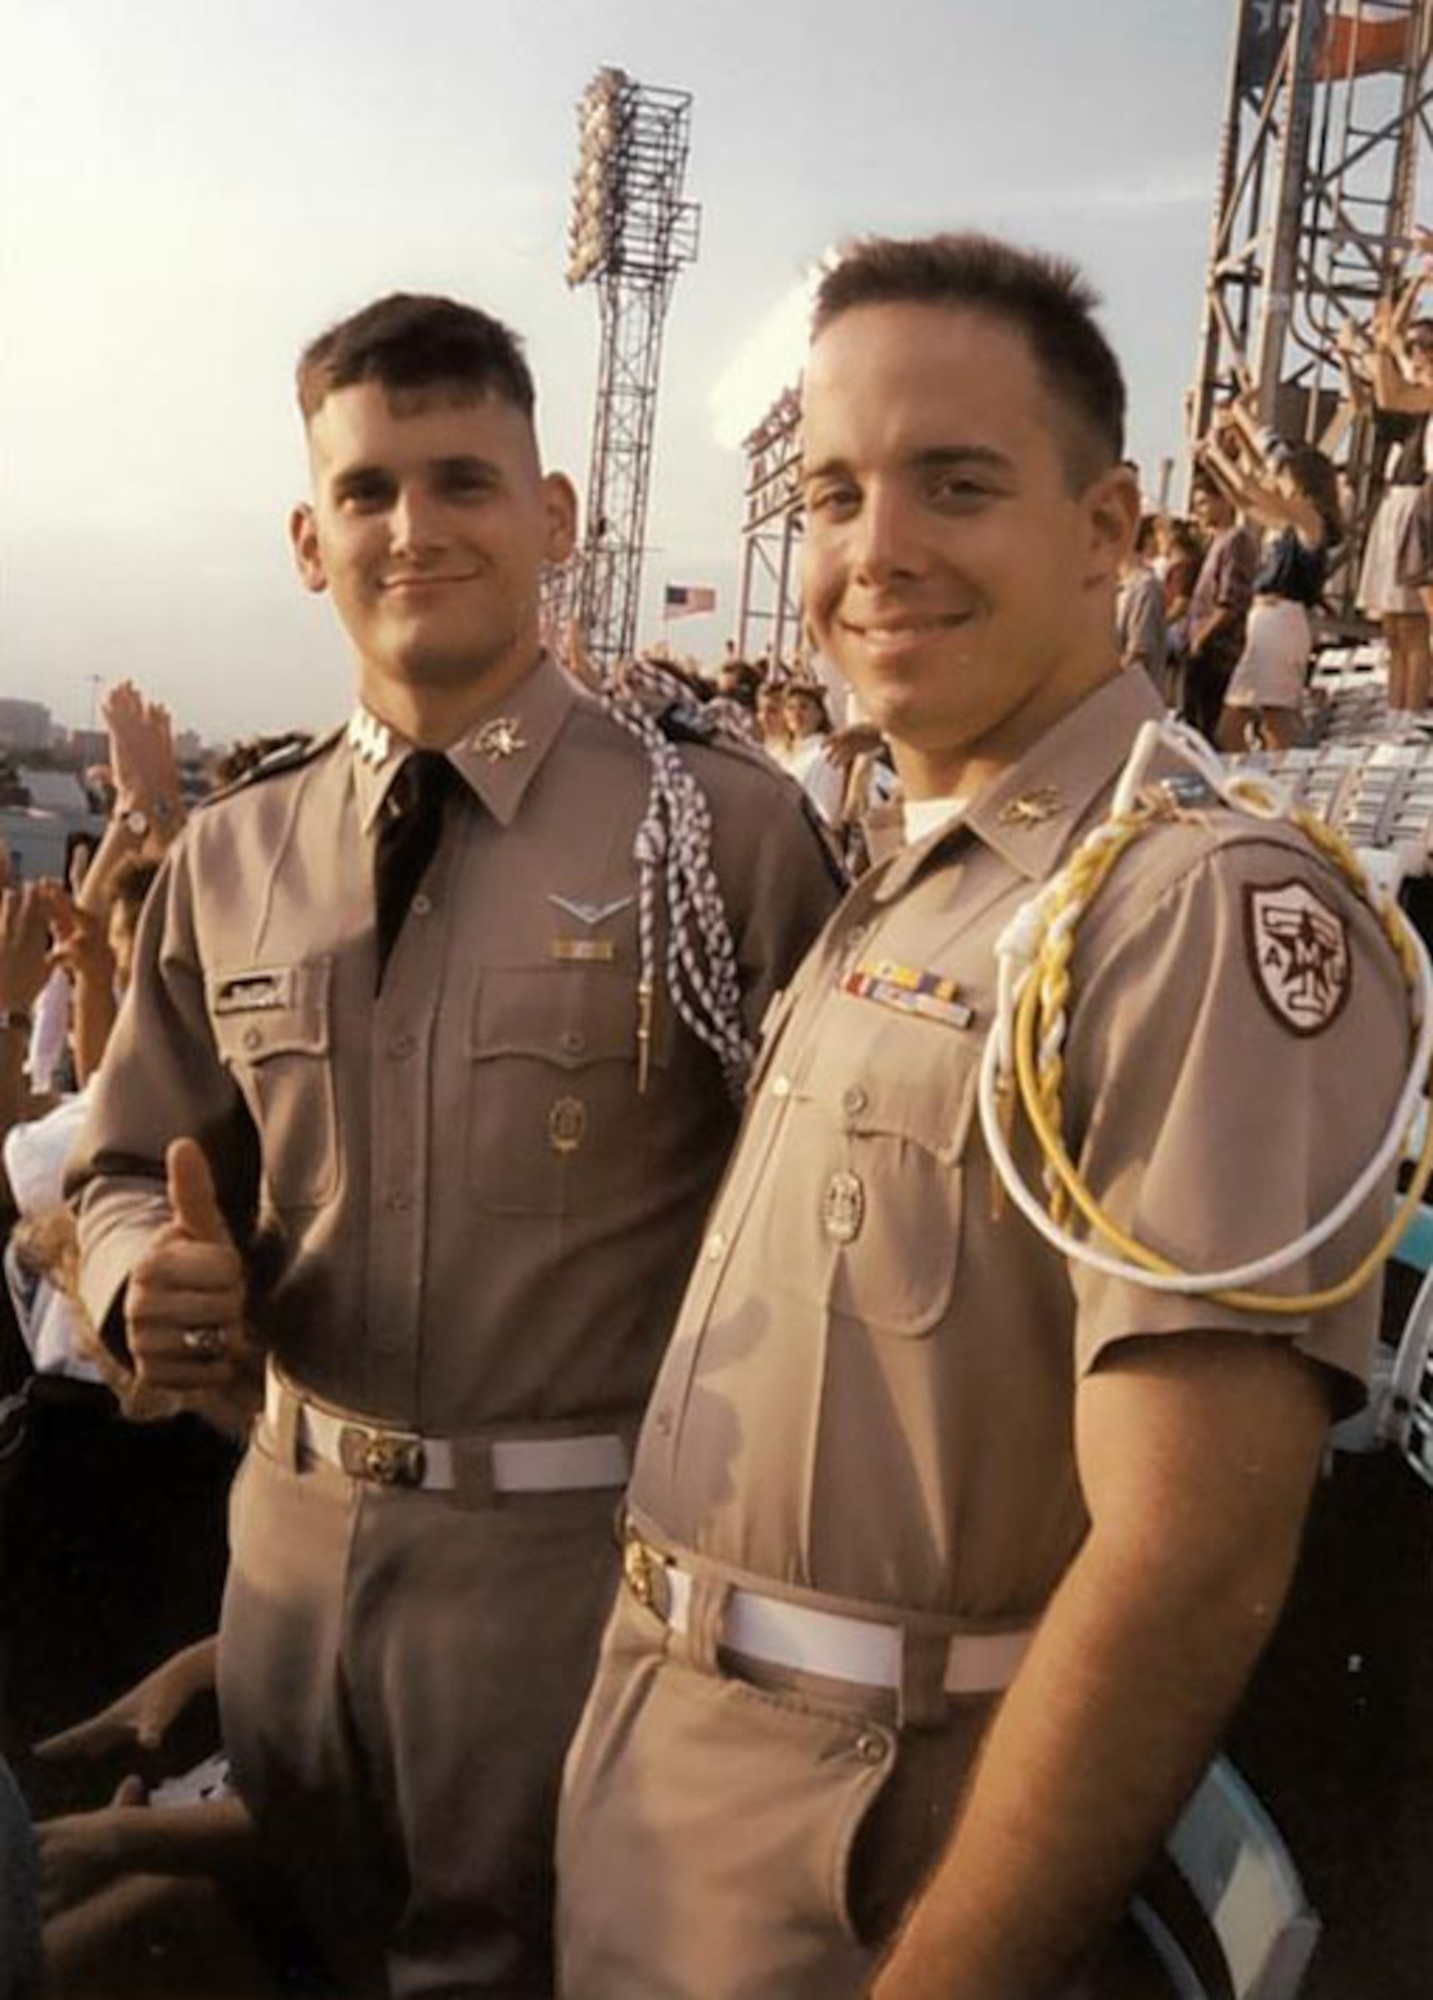 Texas A&M University cadets Douglas Thies, left, and David Vaclavik, stand for a picture in their uniforms at the Cotton Bowl Stadium in Dallas, Texas, circa 1992. The two cadets would eventually become U.S. Air Force colonels and take command of the 20th Operations Group and the 20th Mission Support Group, respectively, providing combat-ready F-16CM Fighting Falcon airpower and Airmen to suppress enemy air defenses and provide close air support in the U.S. Central Command's area of responsibility. (Courtesy photo)